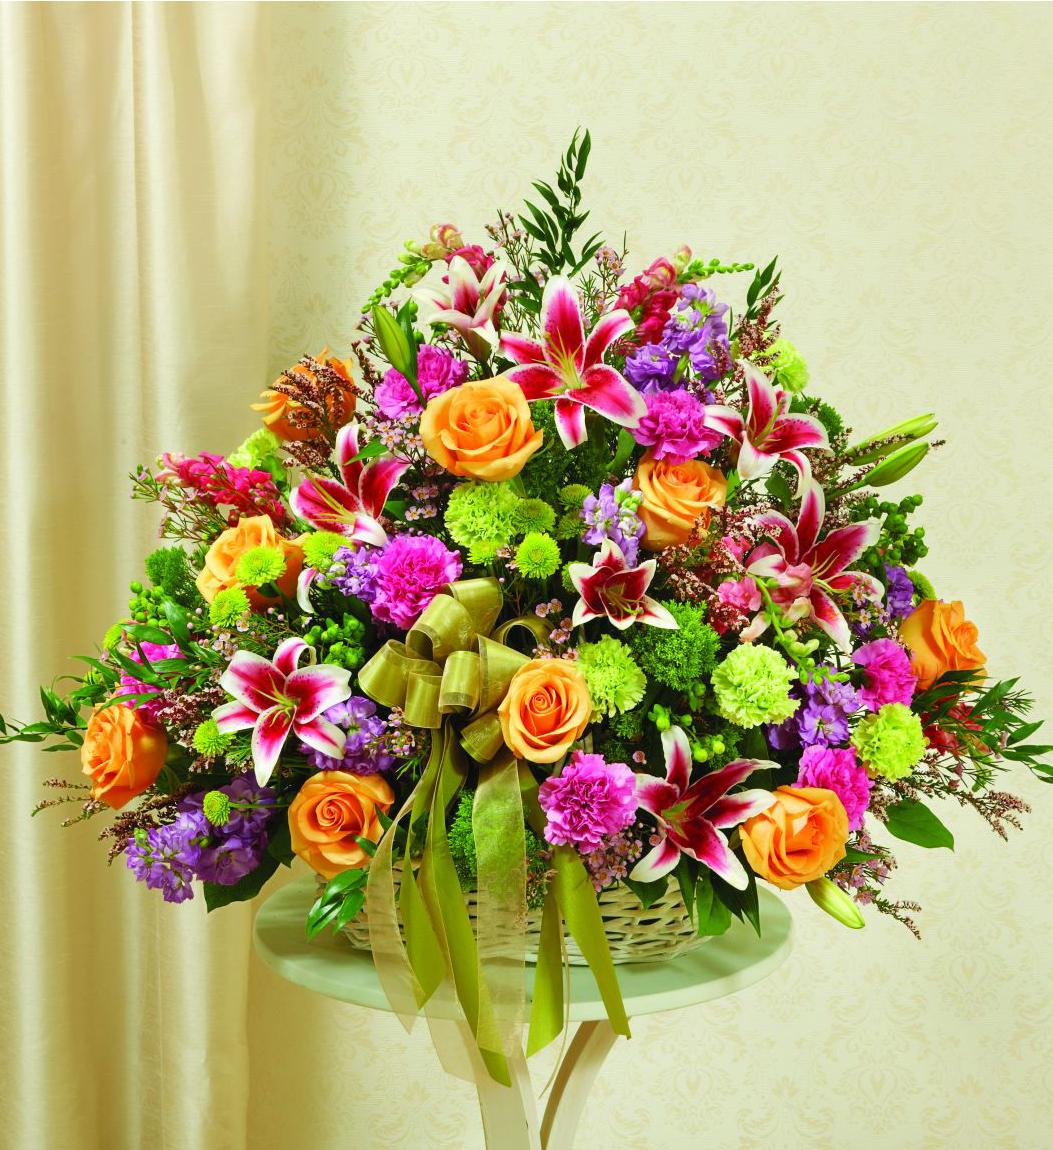 Brightest Love Funeral Basket Flowers From The Heart